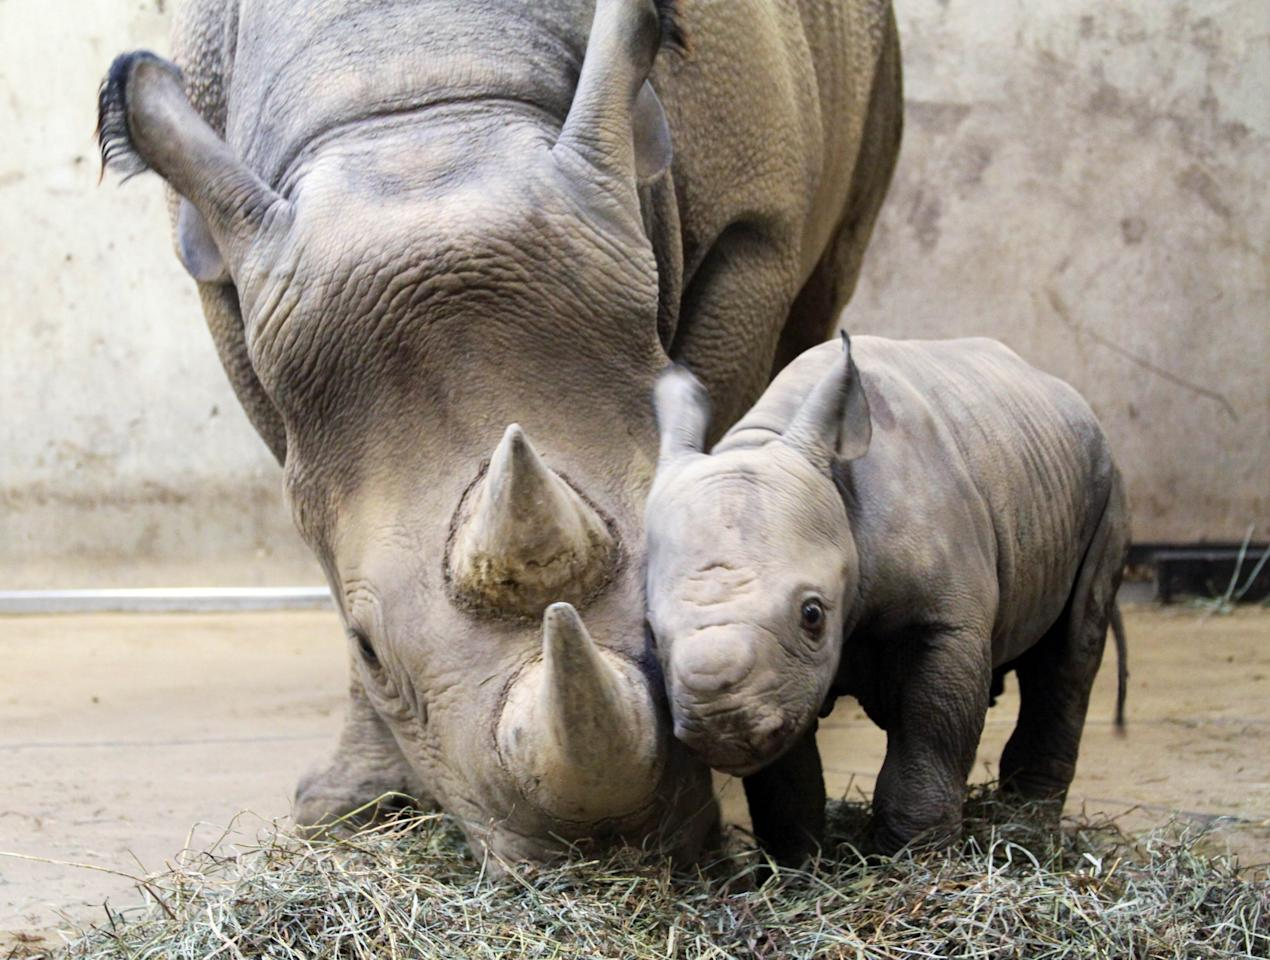 In this photo provided Jan. 25, 2011, by the Saint Louis Zoo, is a baby black rhinoceros calf with his mother, Kati Rain, at the Saint Louis Zoo in Saint Louis. The as yet unnamed male was born at the zoo on Jan. 14 and weighed 120.5 pounds. He is the first black rhino calf to be born at the Saint Louis Zoo in 20 years.